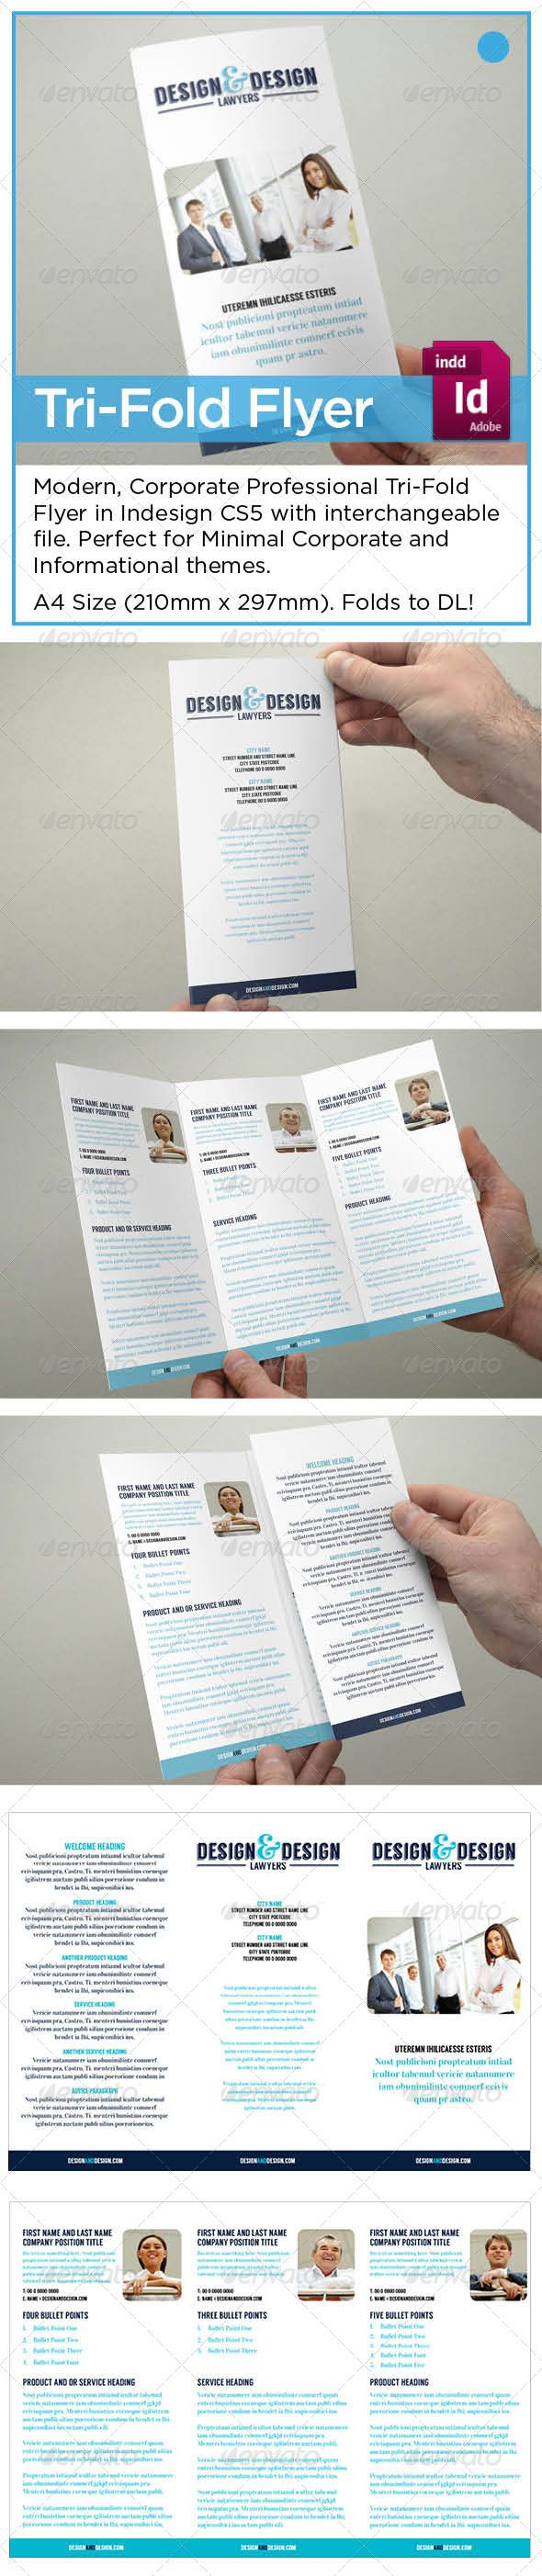 best images about business forms home cleaning corporate tri fold flyer